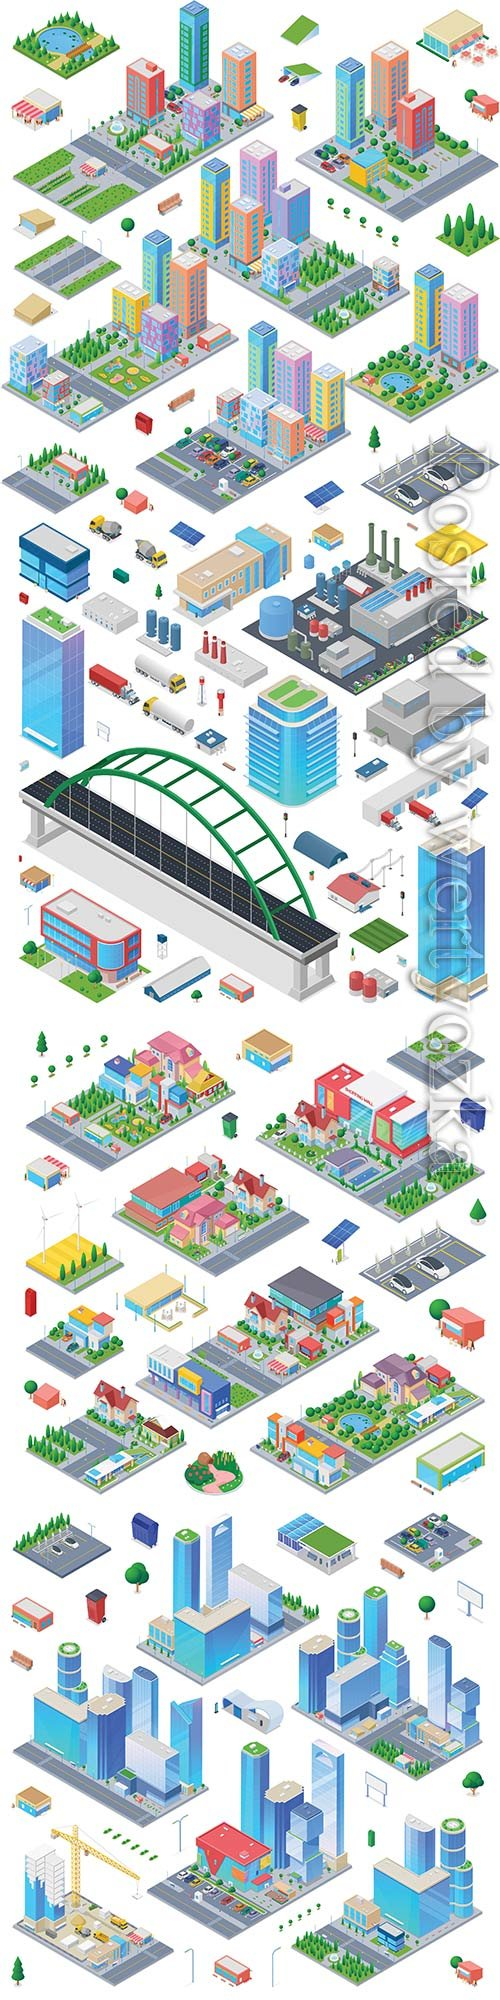 Cottage isometric scene generator city creator vector design